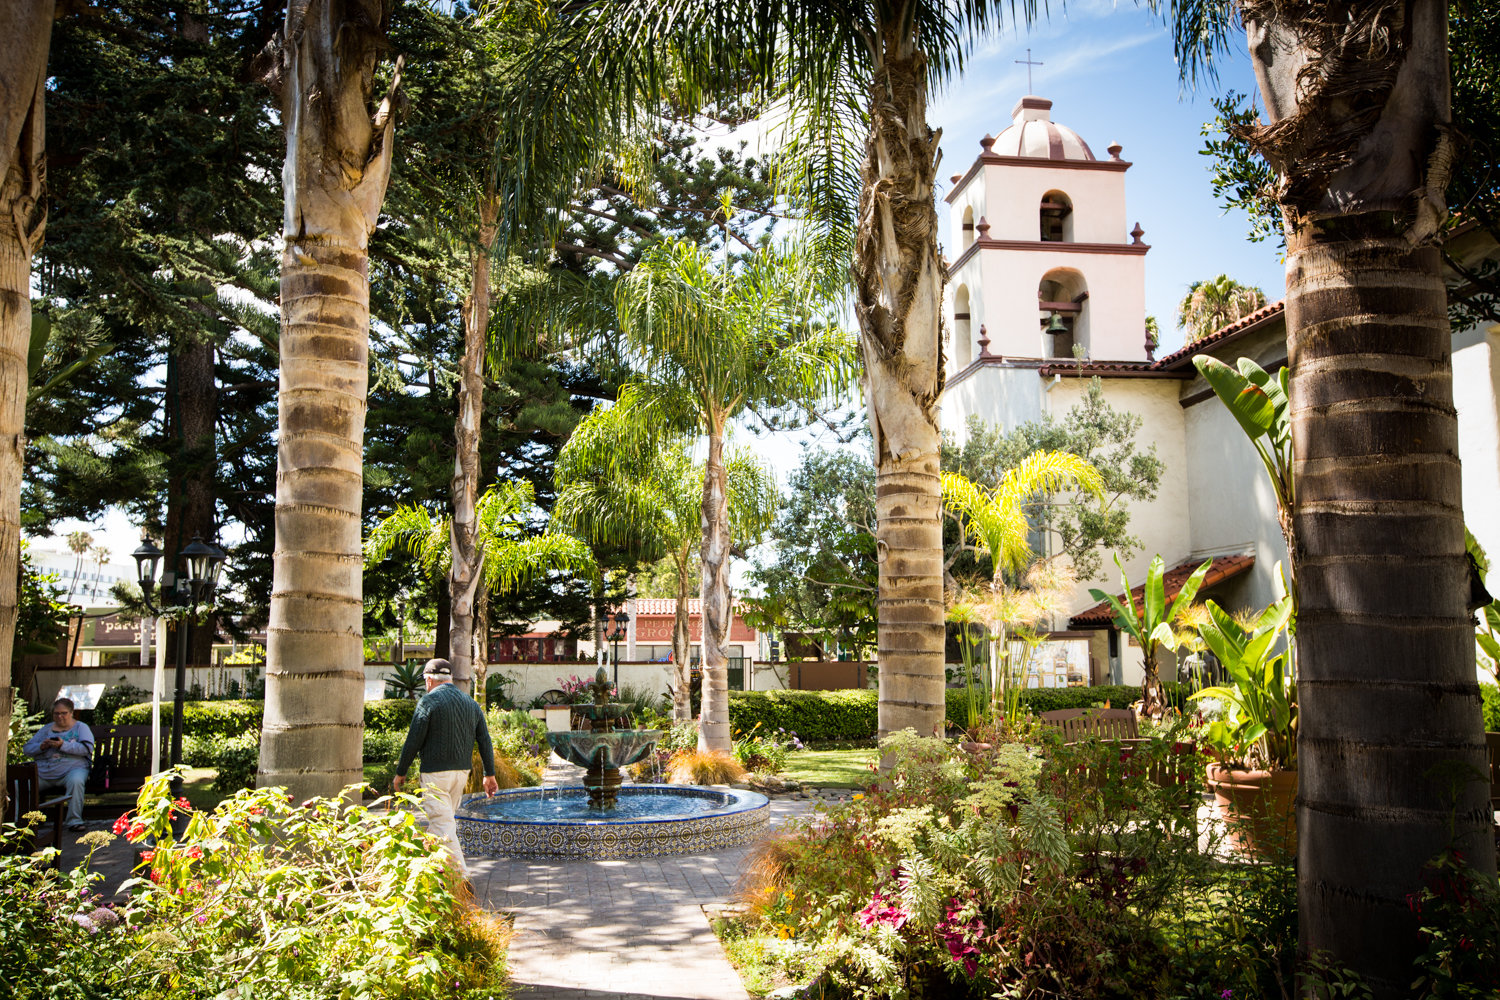 Mission San Buenaventura in Ventura, Calif., is seen in this undated photo.